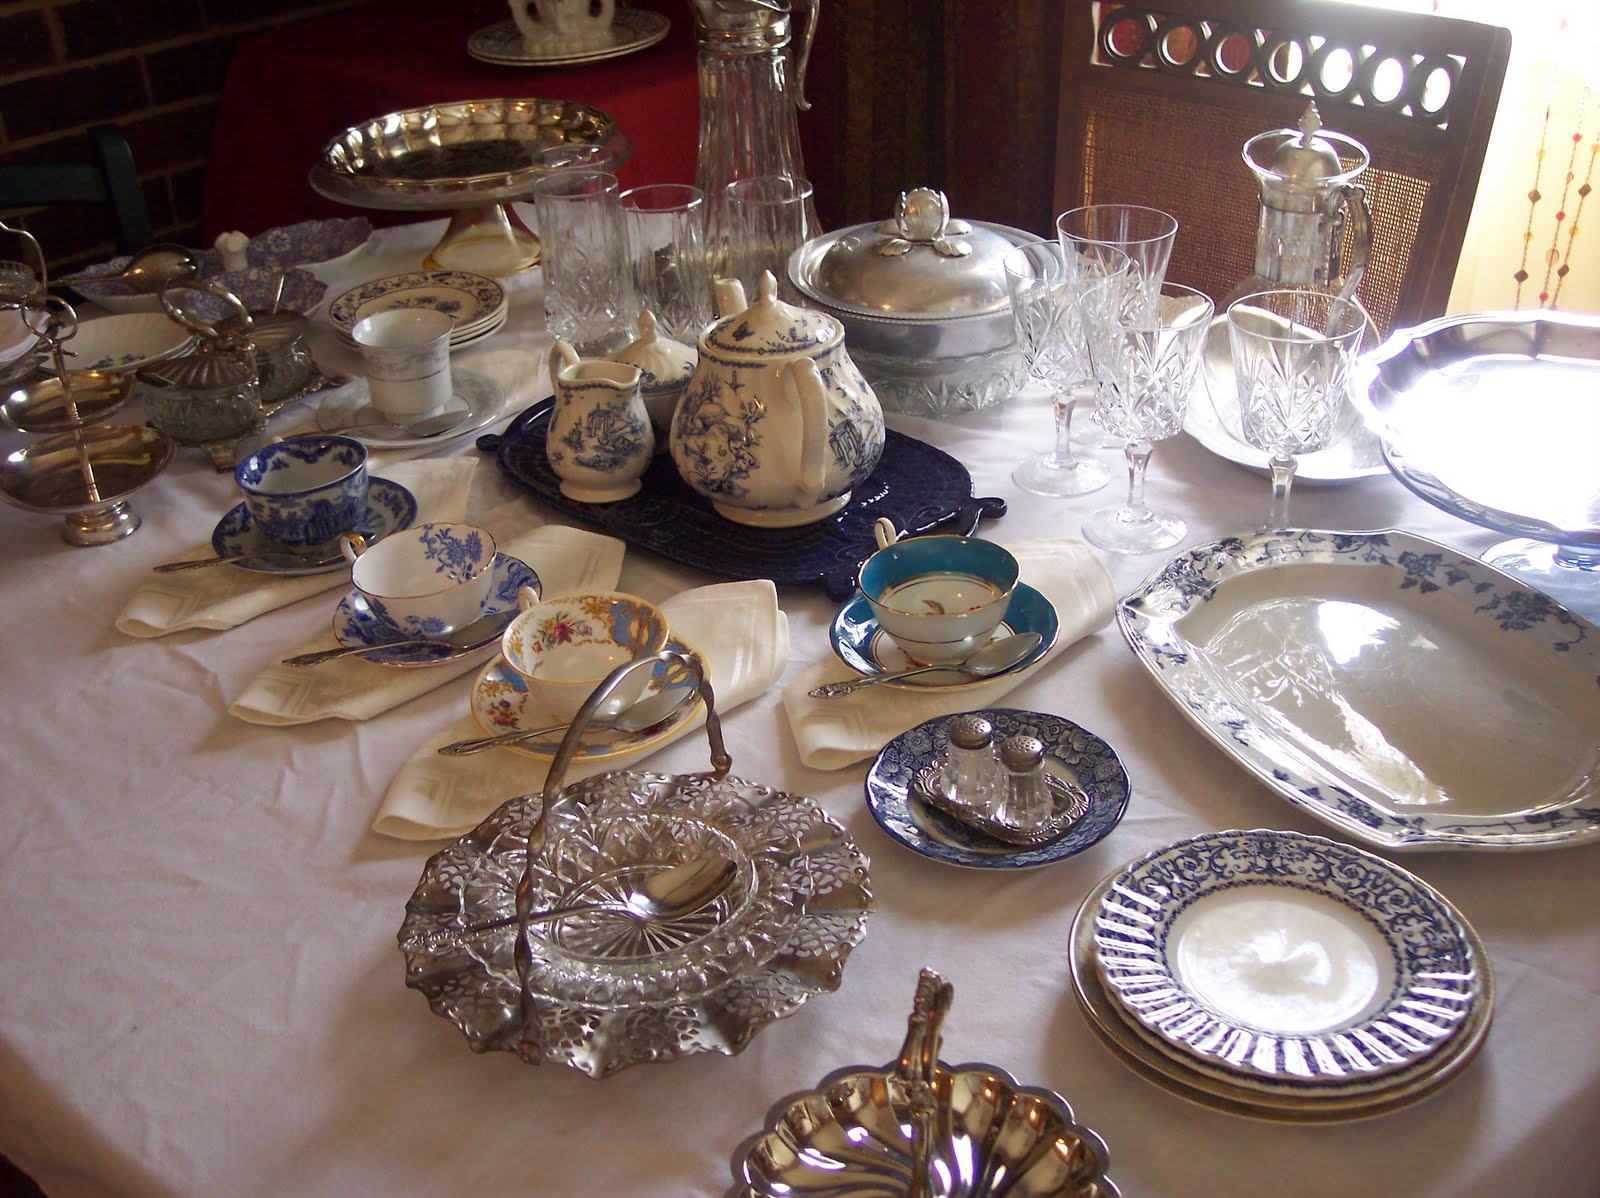 This is the savory side for Victorian tea party supplies